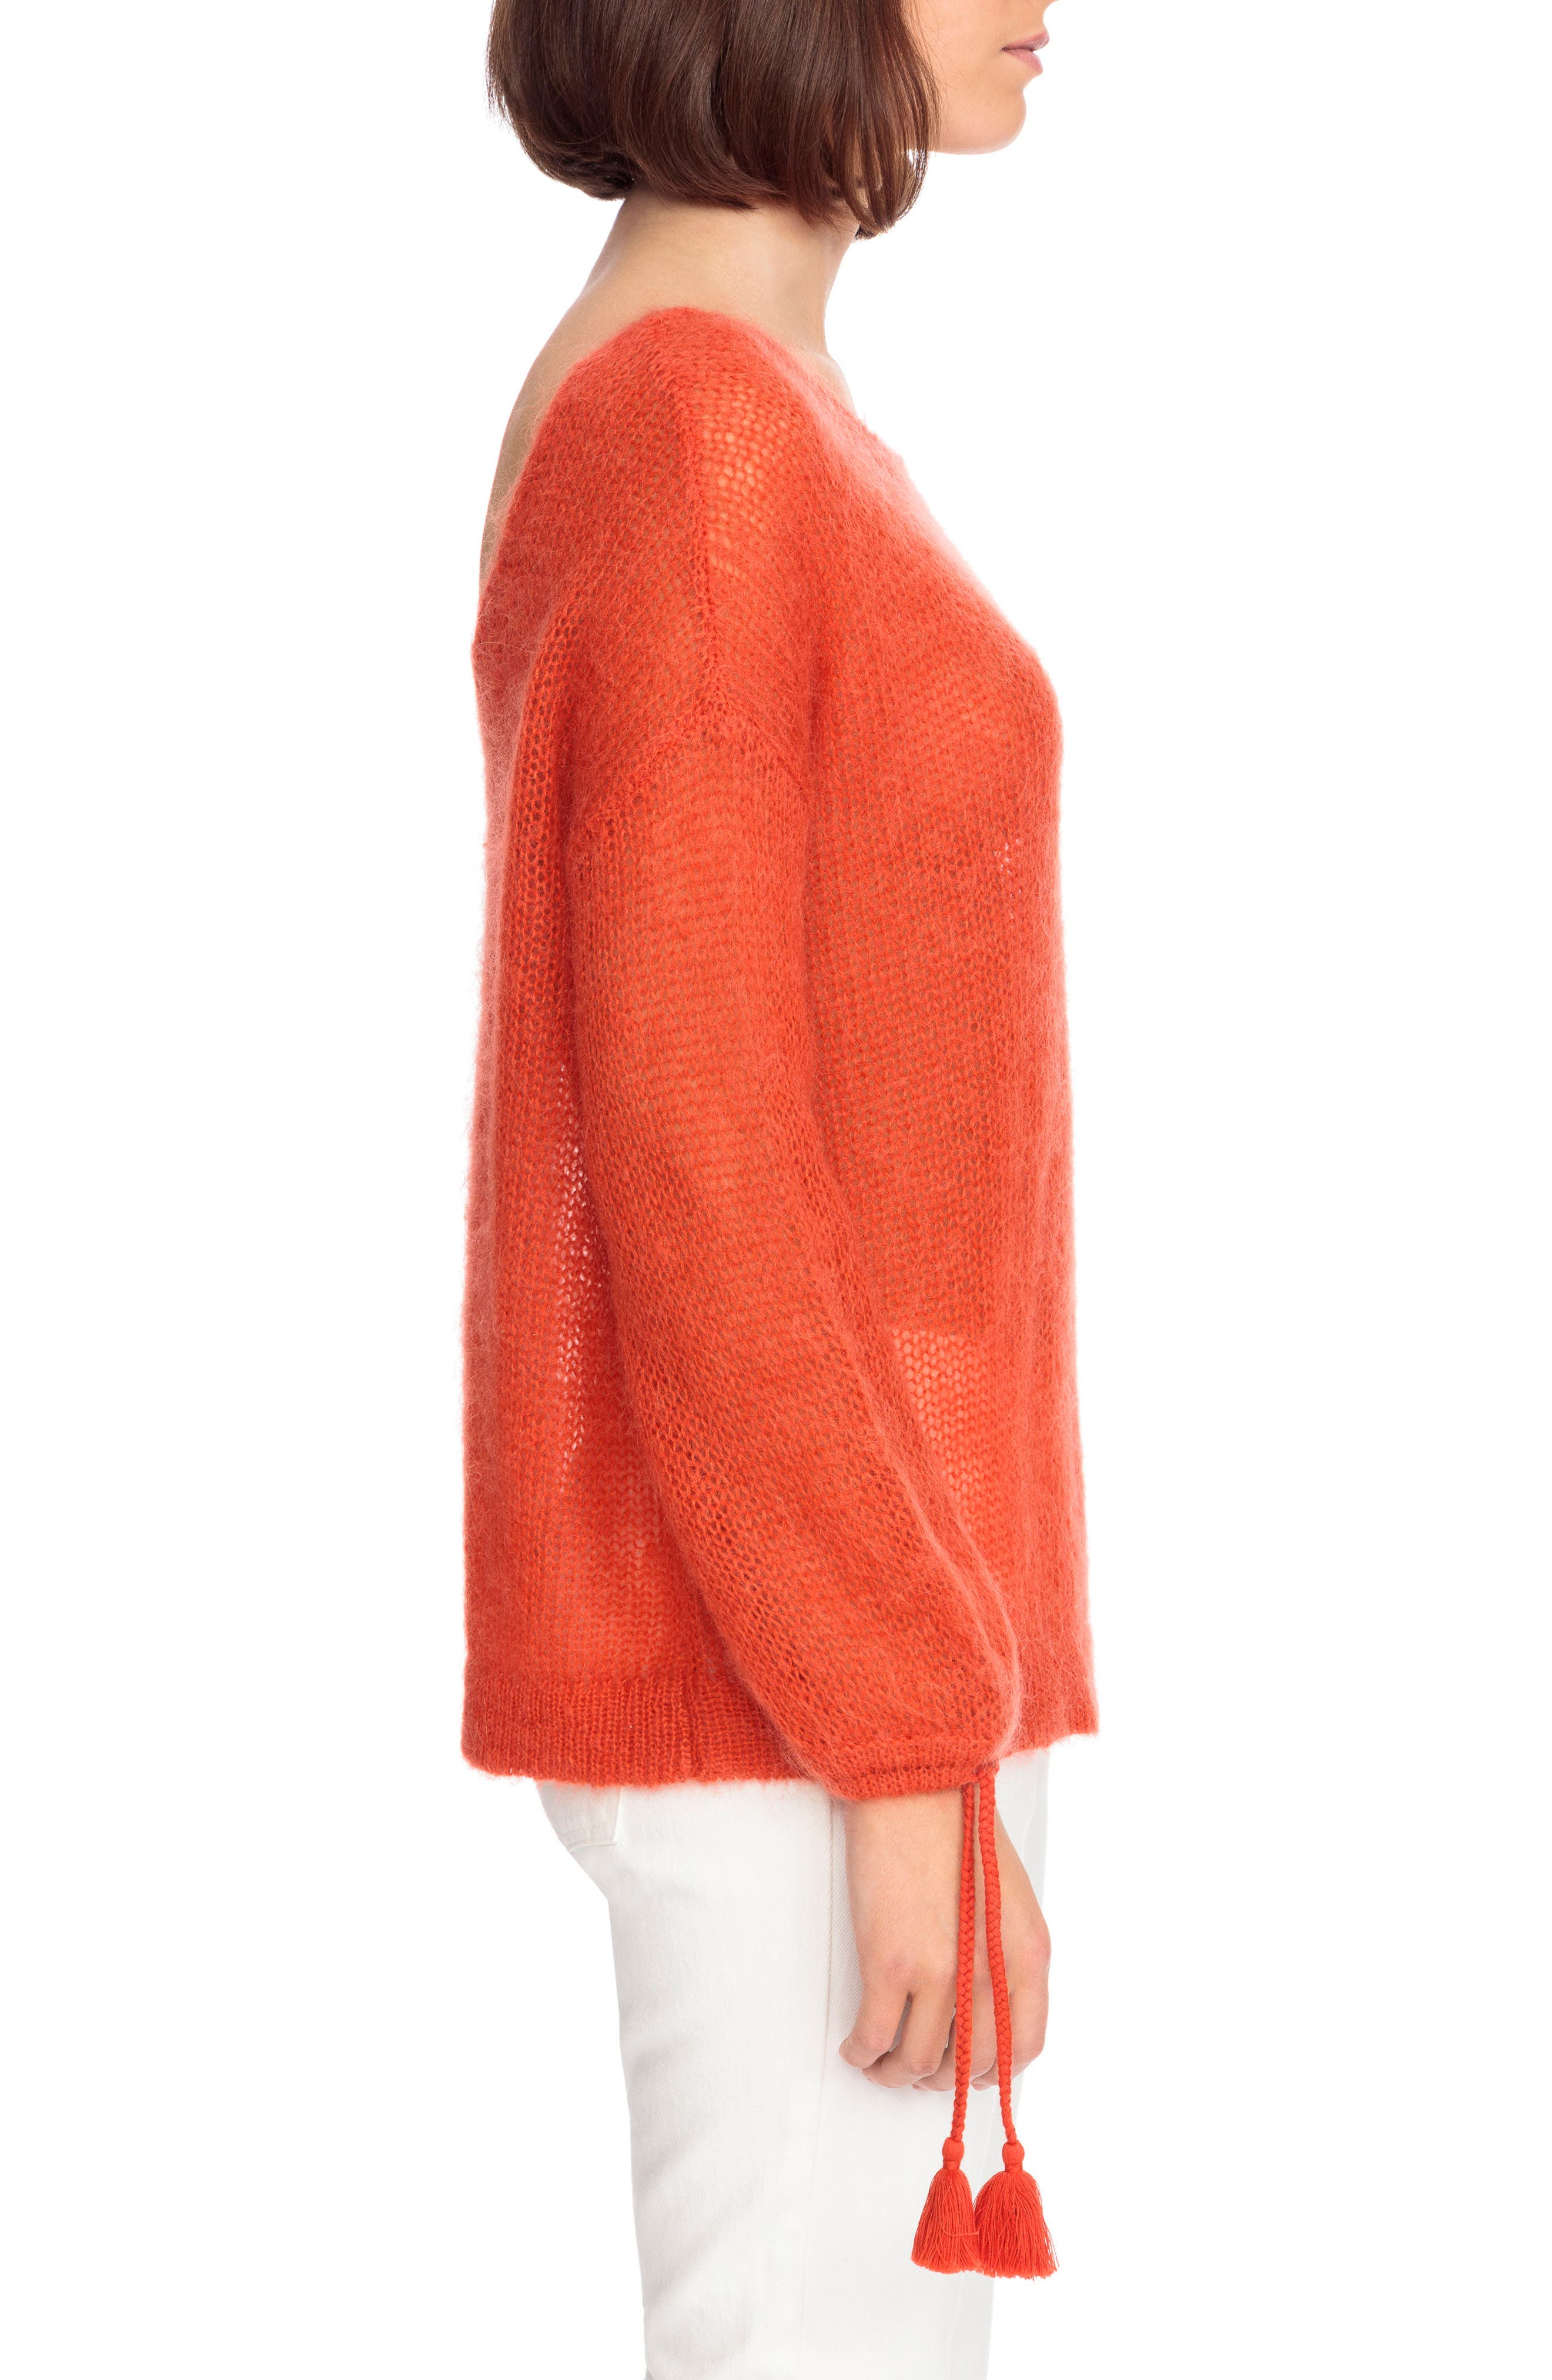 Dicky Tie Cuff Sweater,                             Alternate thumbnail 4, color,                             Orange Red